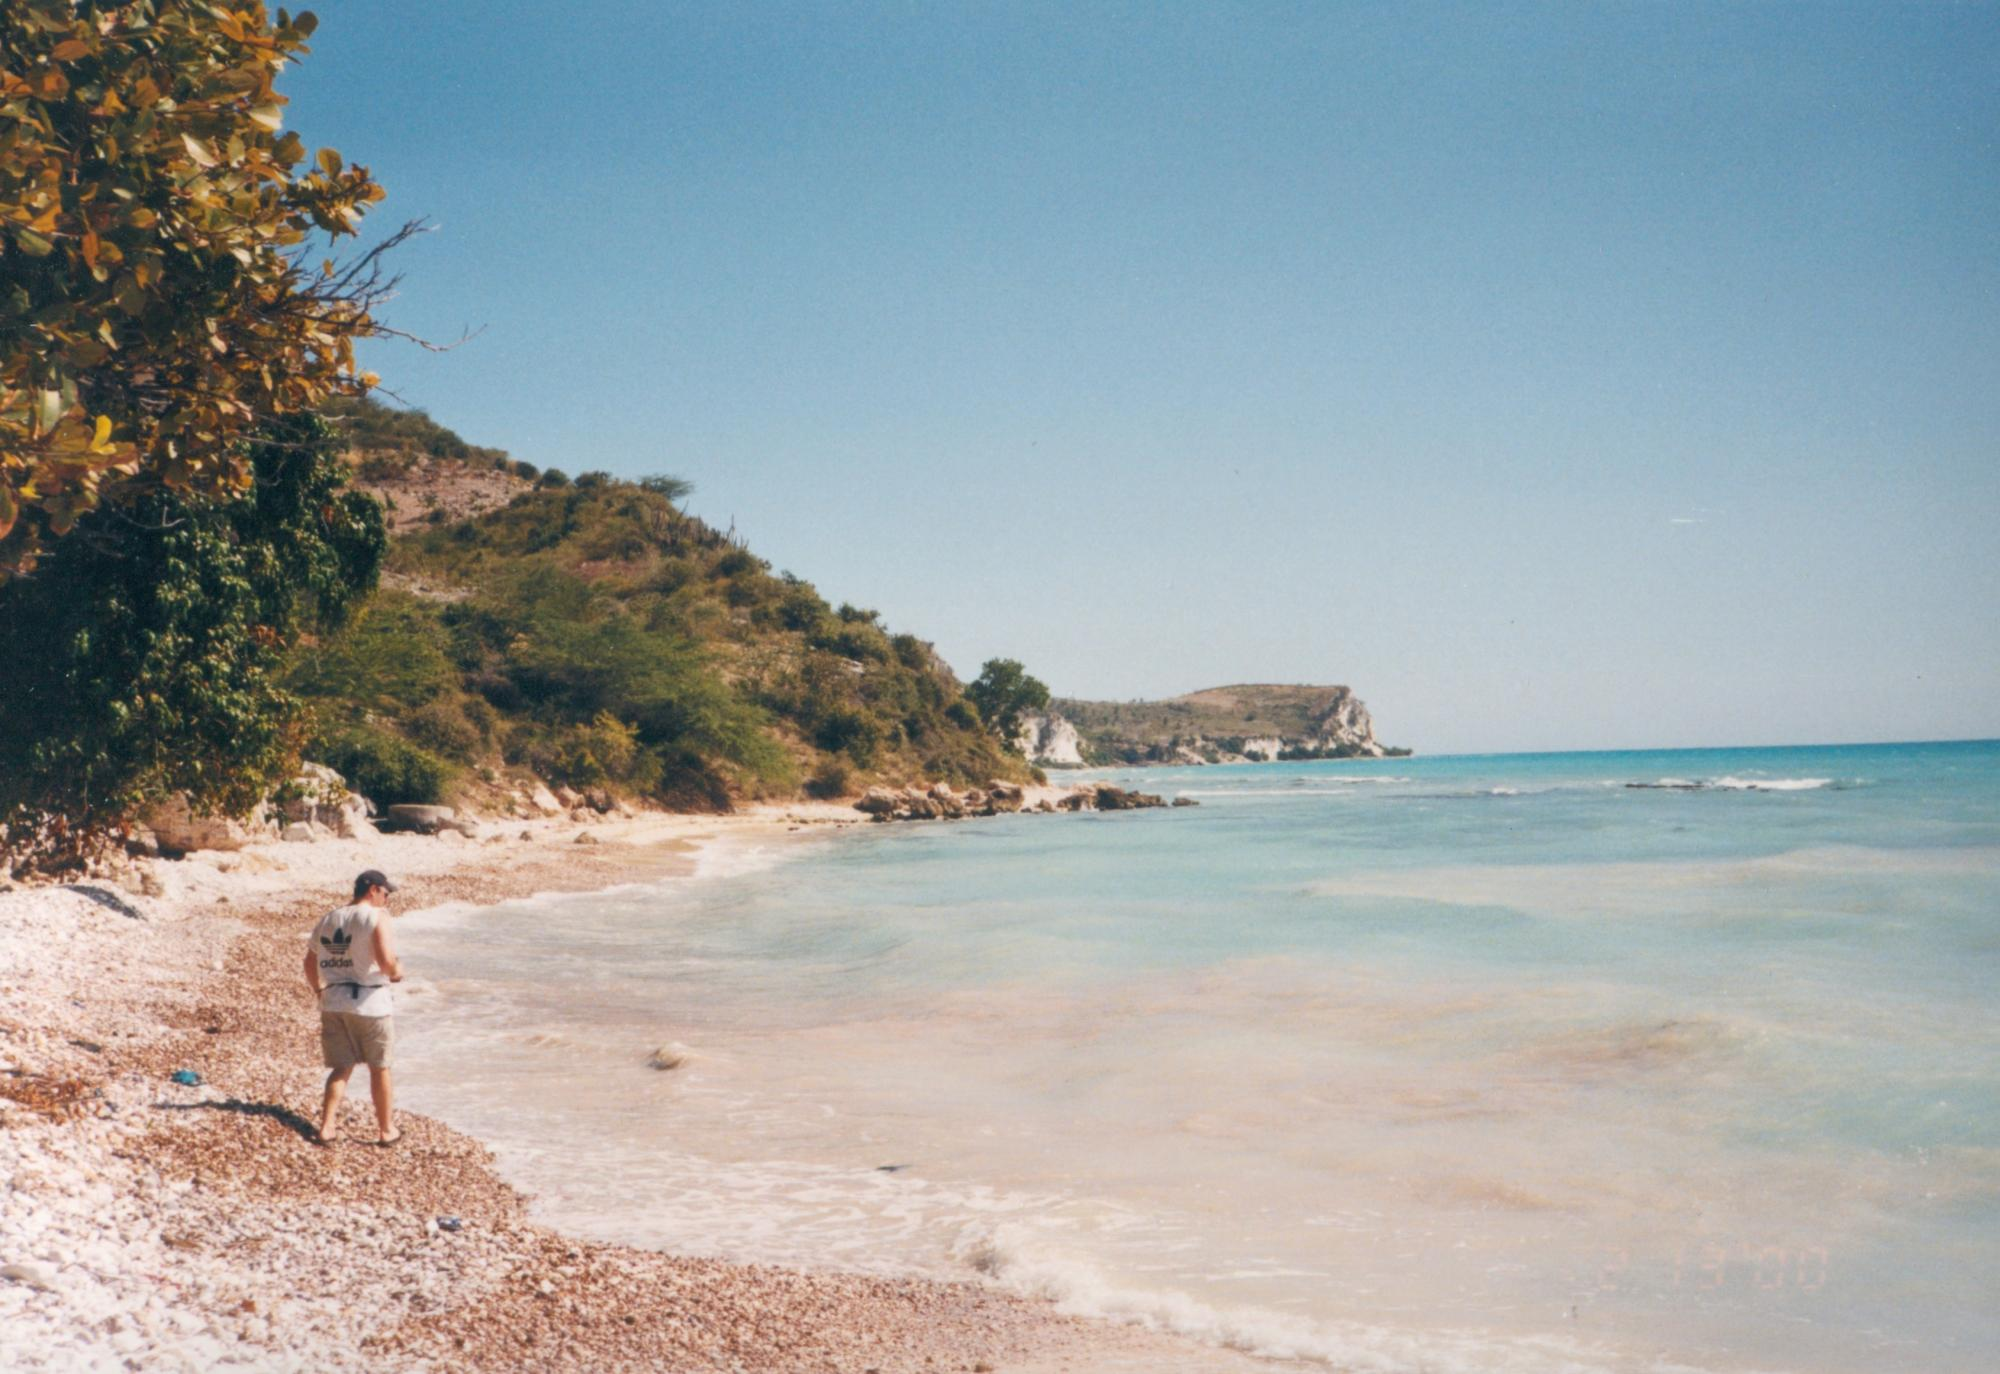 HMMW_Team_member_walking_beach_circa_2000_image10.jpg